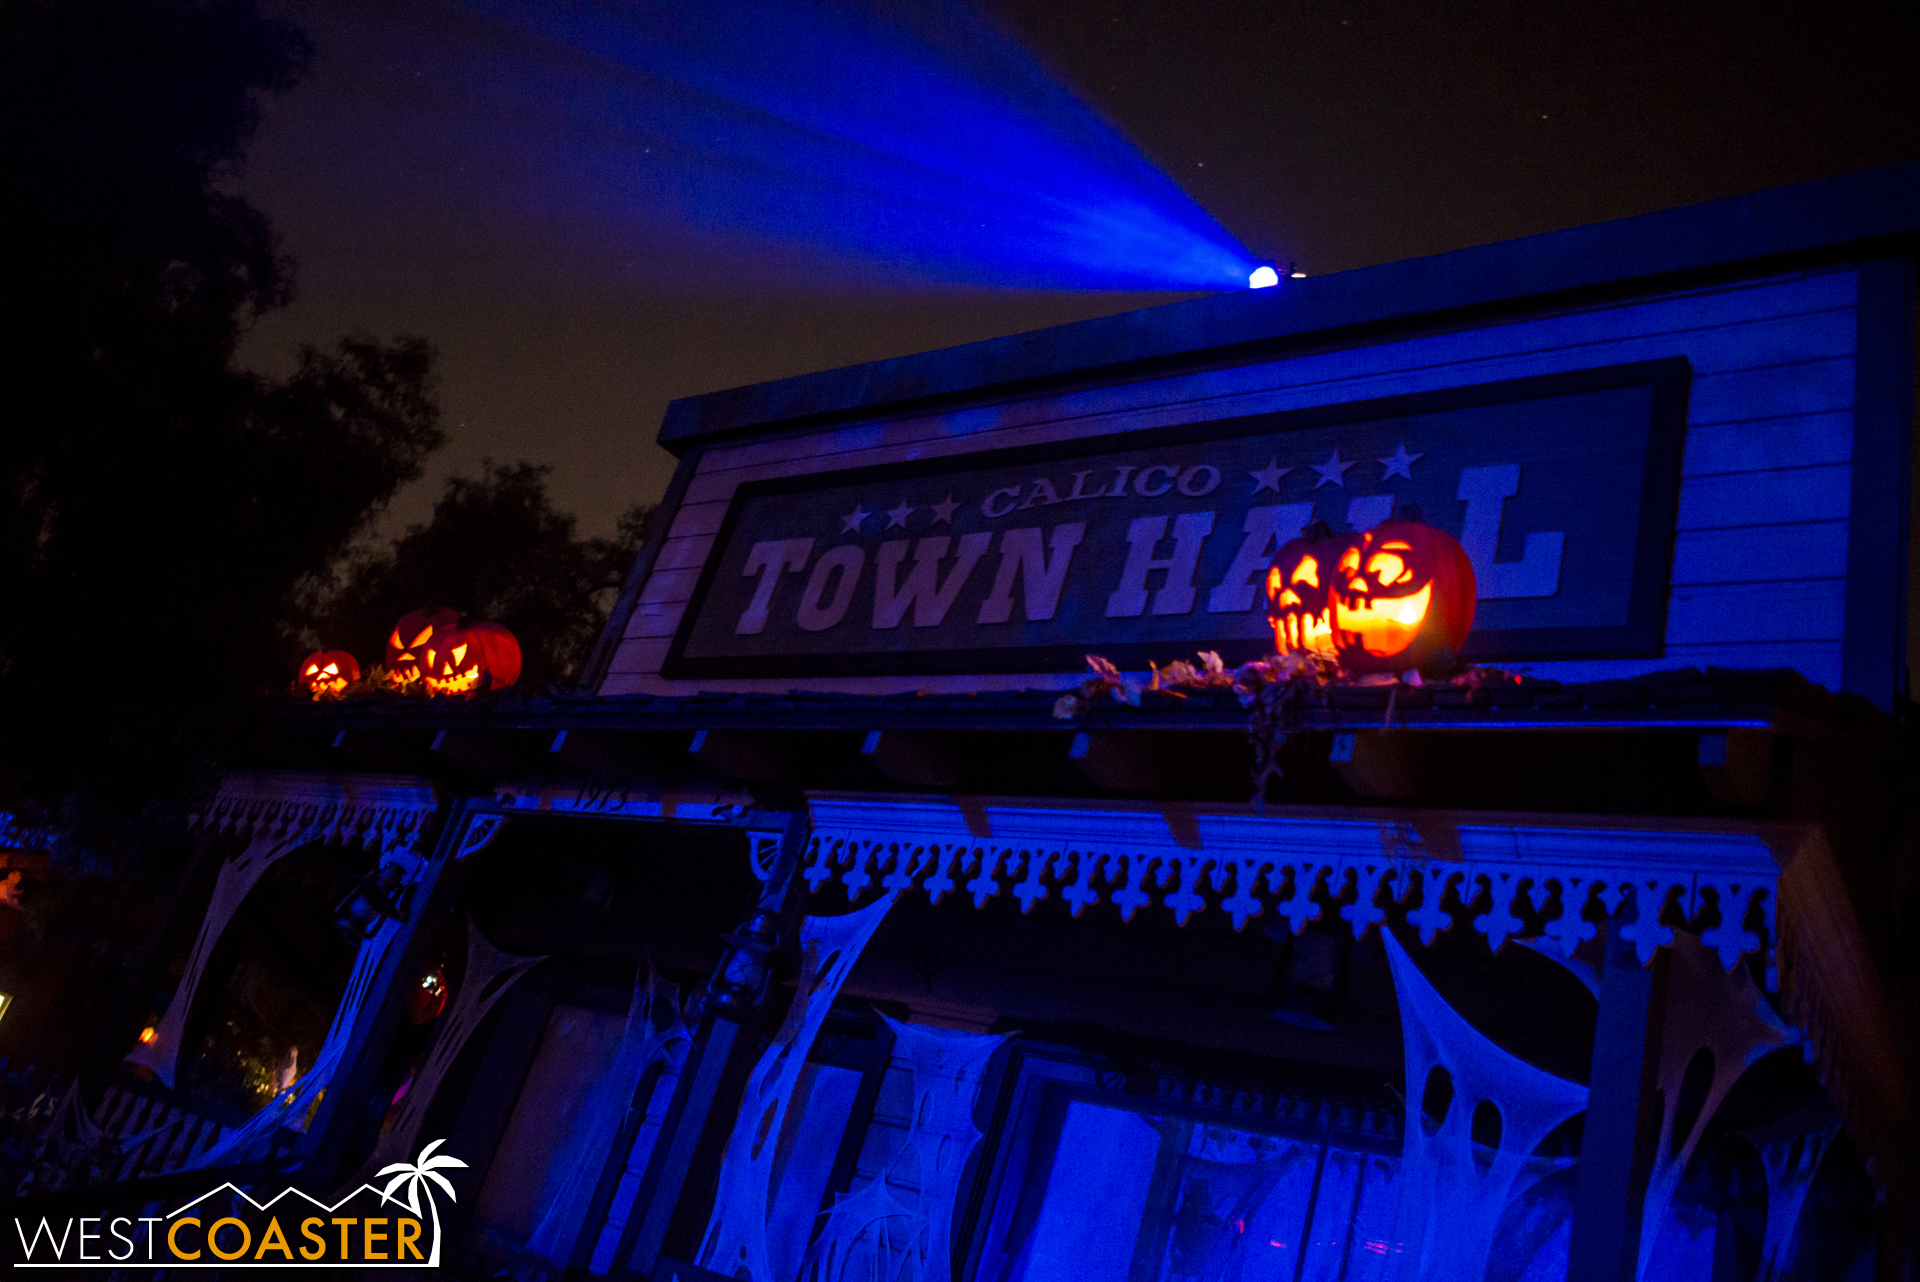 The former Haunt Museum turned Town Hall for Ghost Town Alive! is the site of Visions.